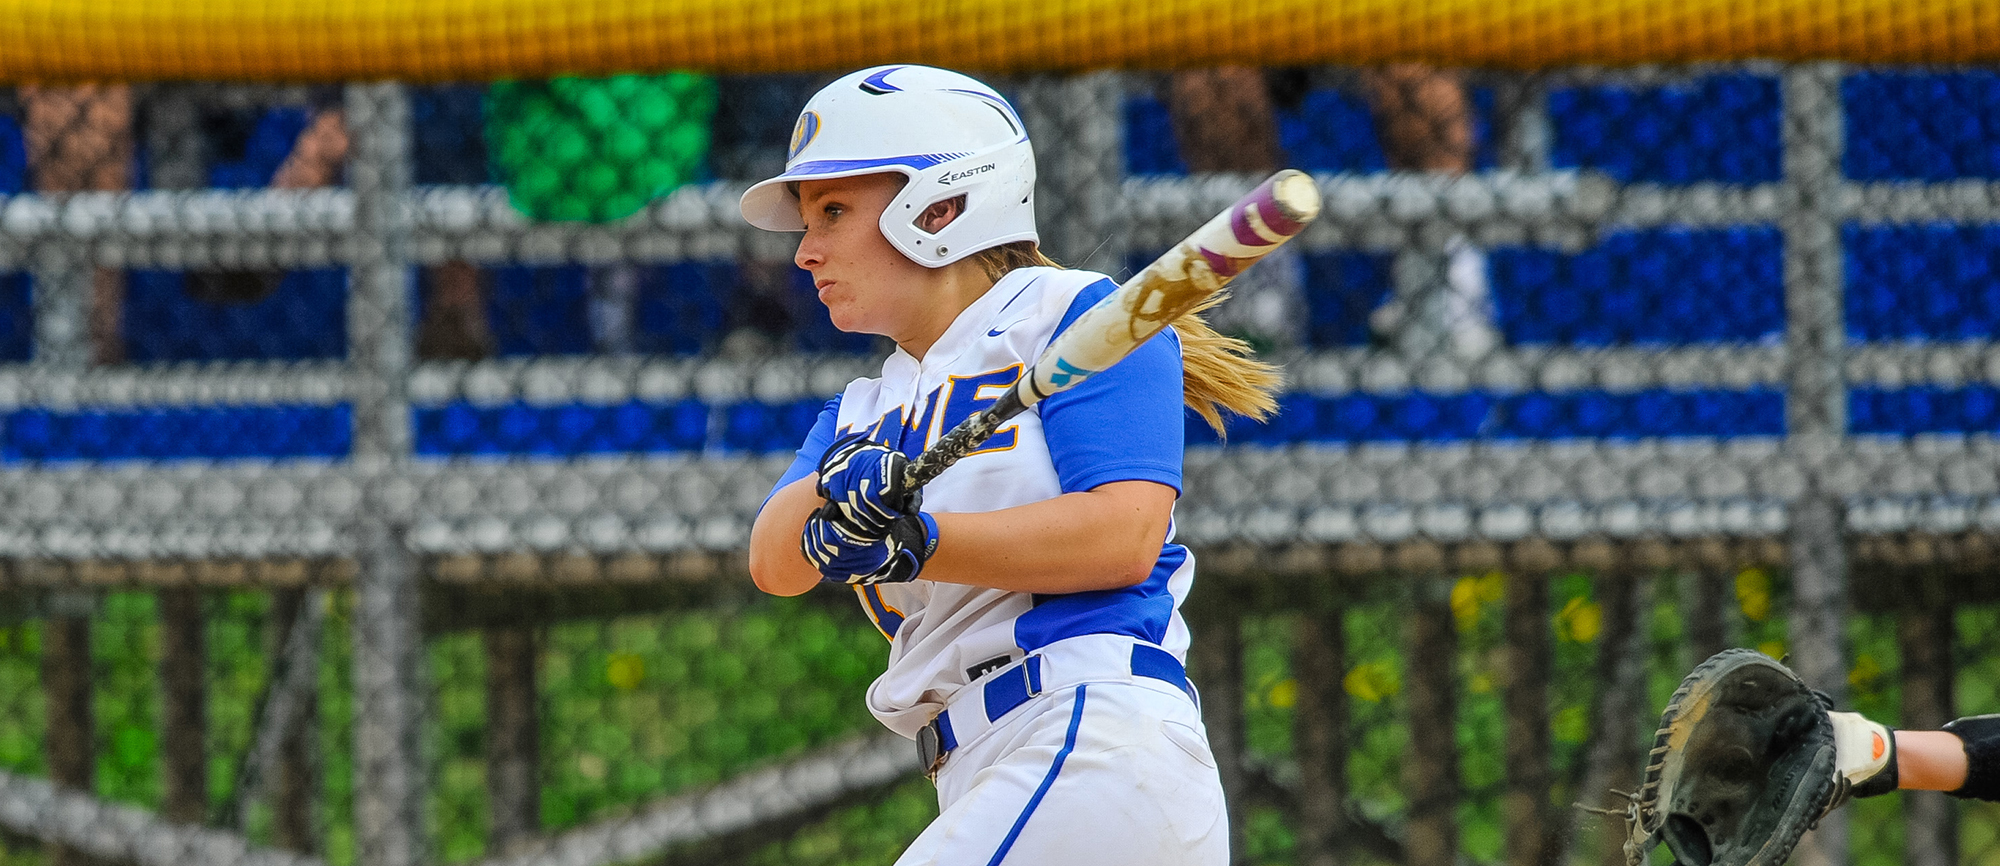 Senior Gabby Lavinio drove in Western New England's lone run with an RBI double as the Golden Bears were eliminated from the CCC Tournament with a 7-1 loss to Roger Williams on Sunday. (Photo by Bill Sharon/Spartan SportShots)